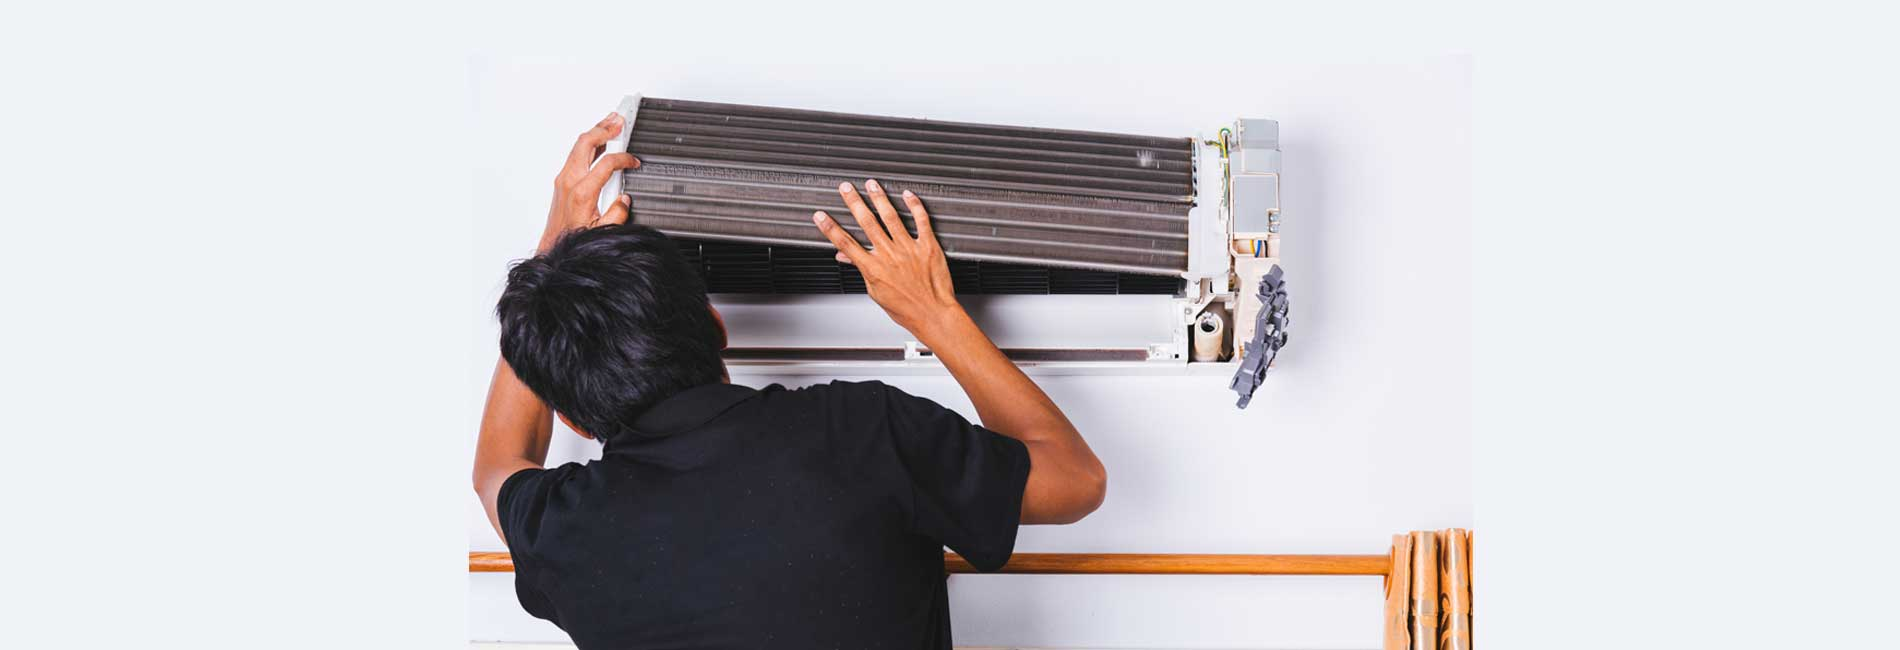 AC Uninstallation in Ayappakkam